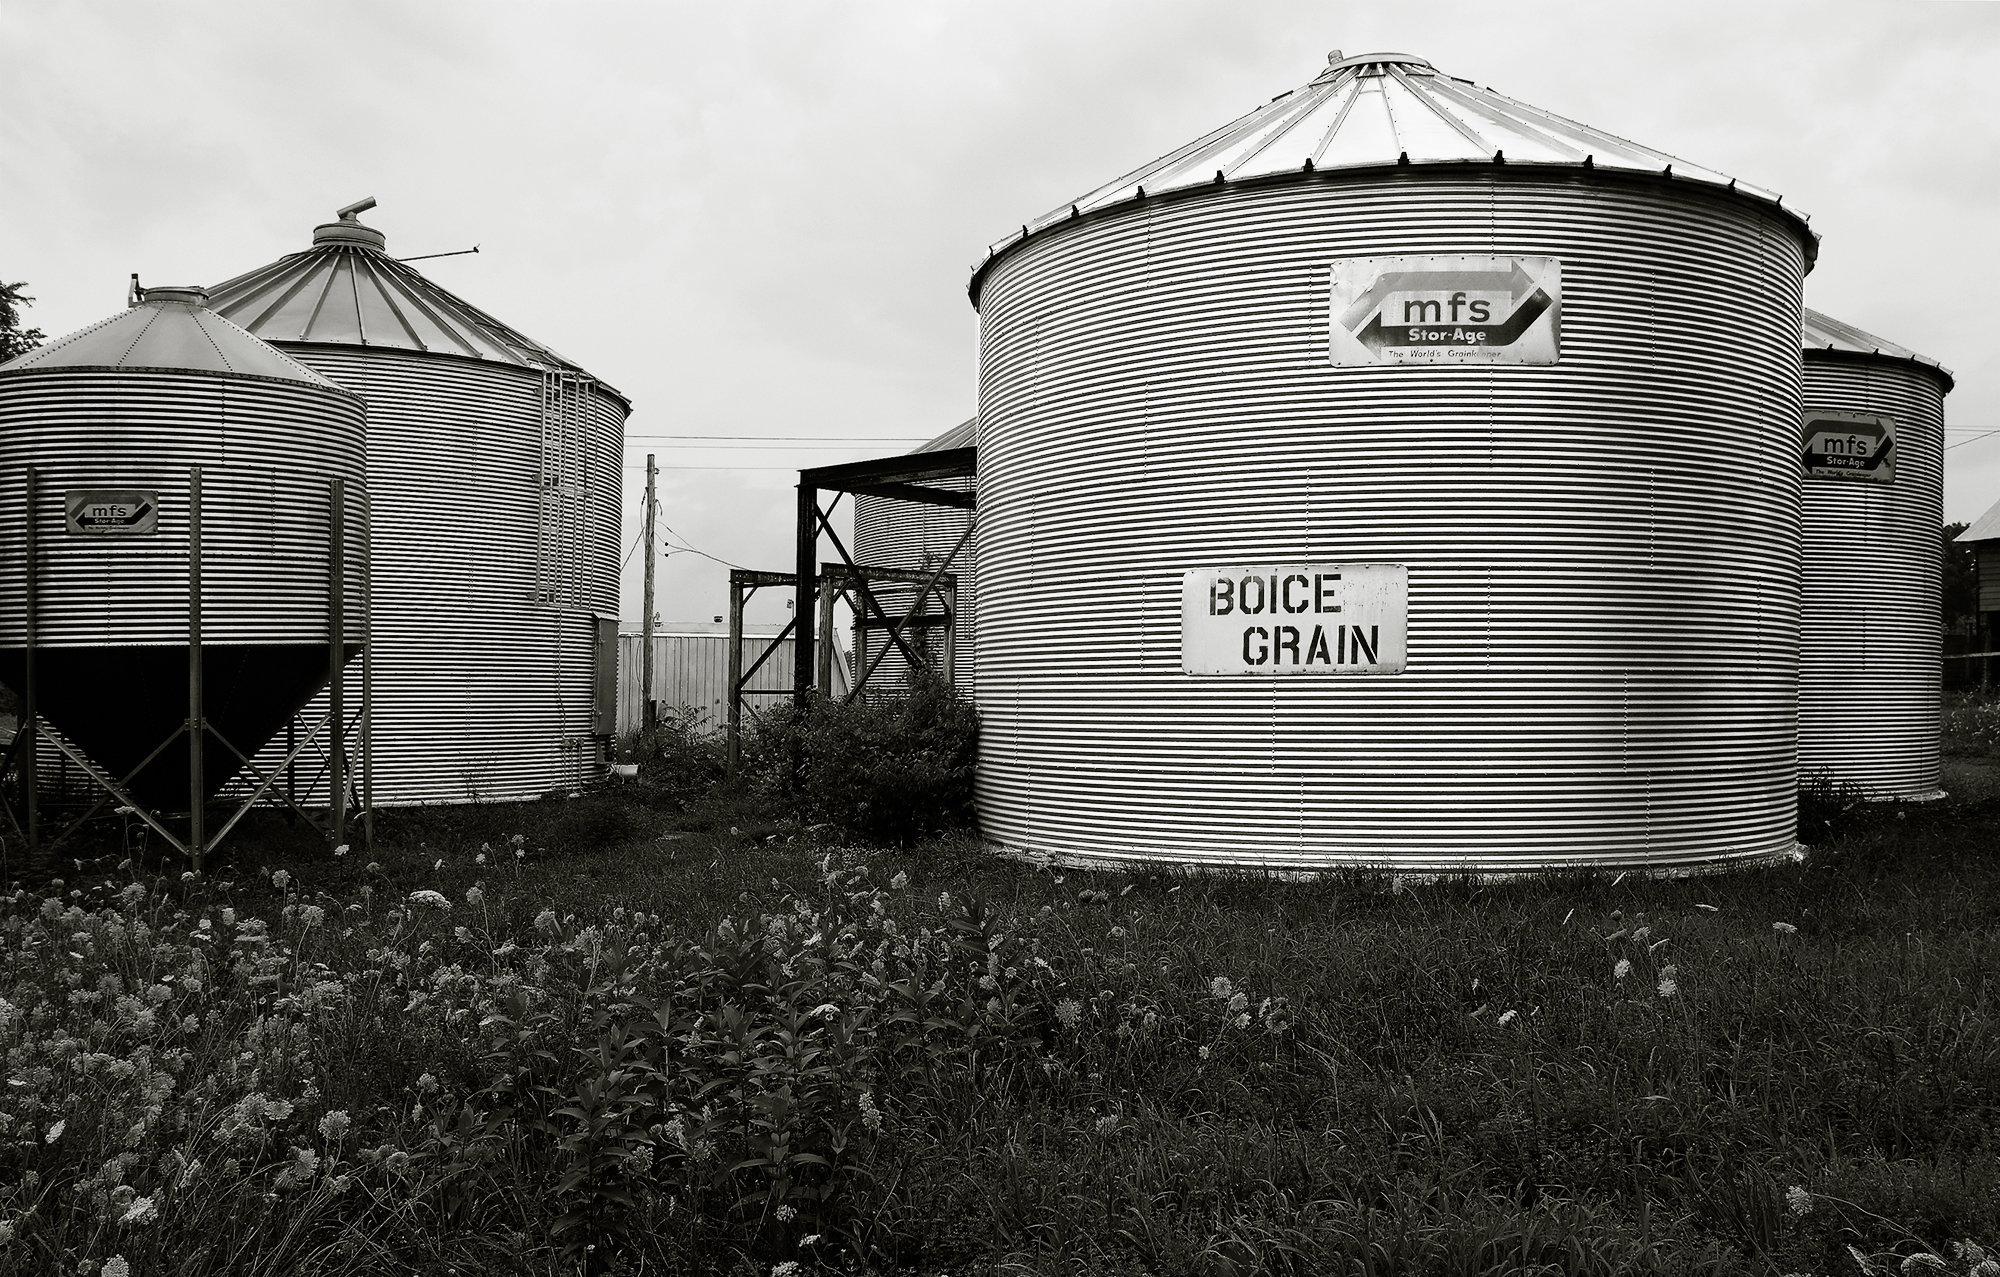 Grain Bins, Blue Stores New York